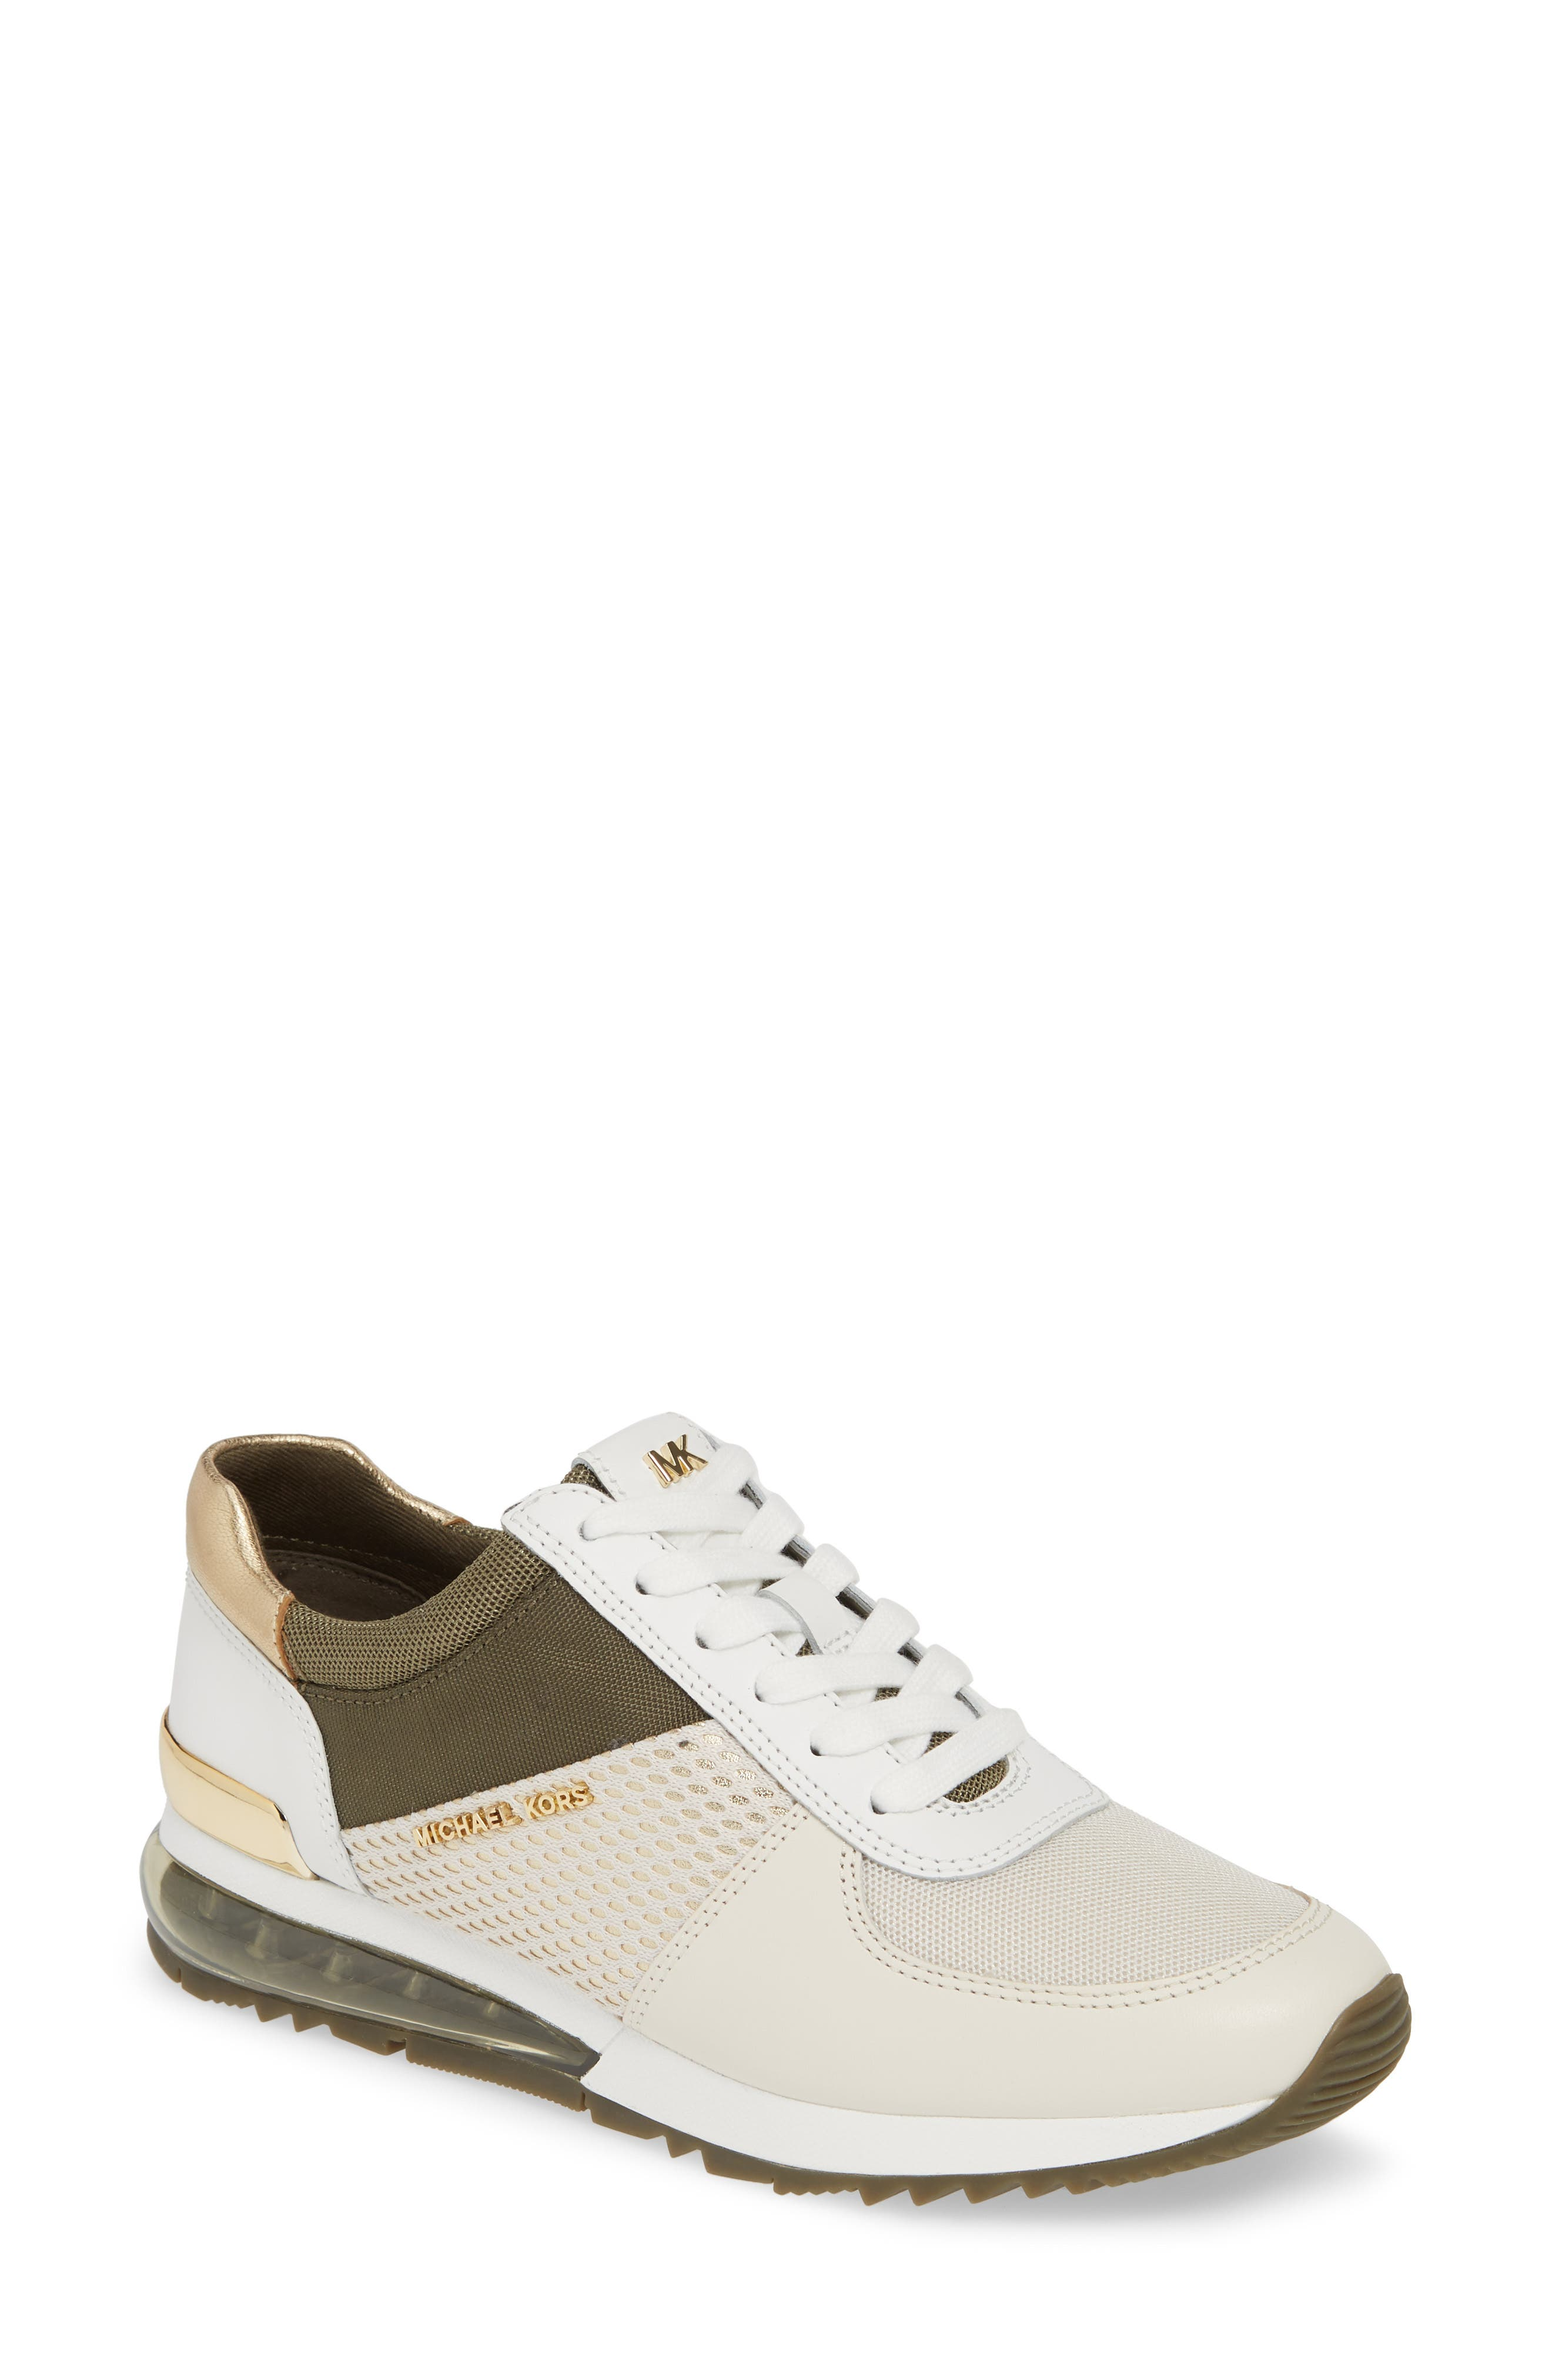 99ff562893a7 Michael Michael Kors Women S Allie Extreme Trainer Sneakers In Cream  Gold